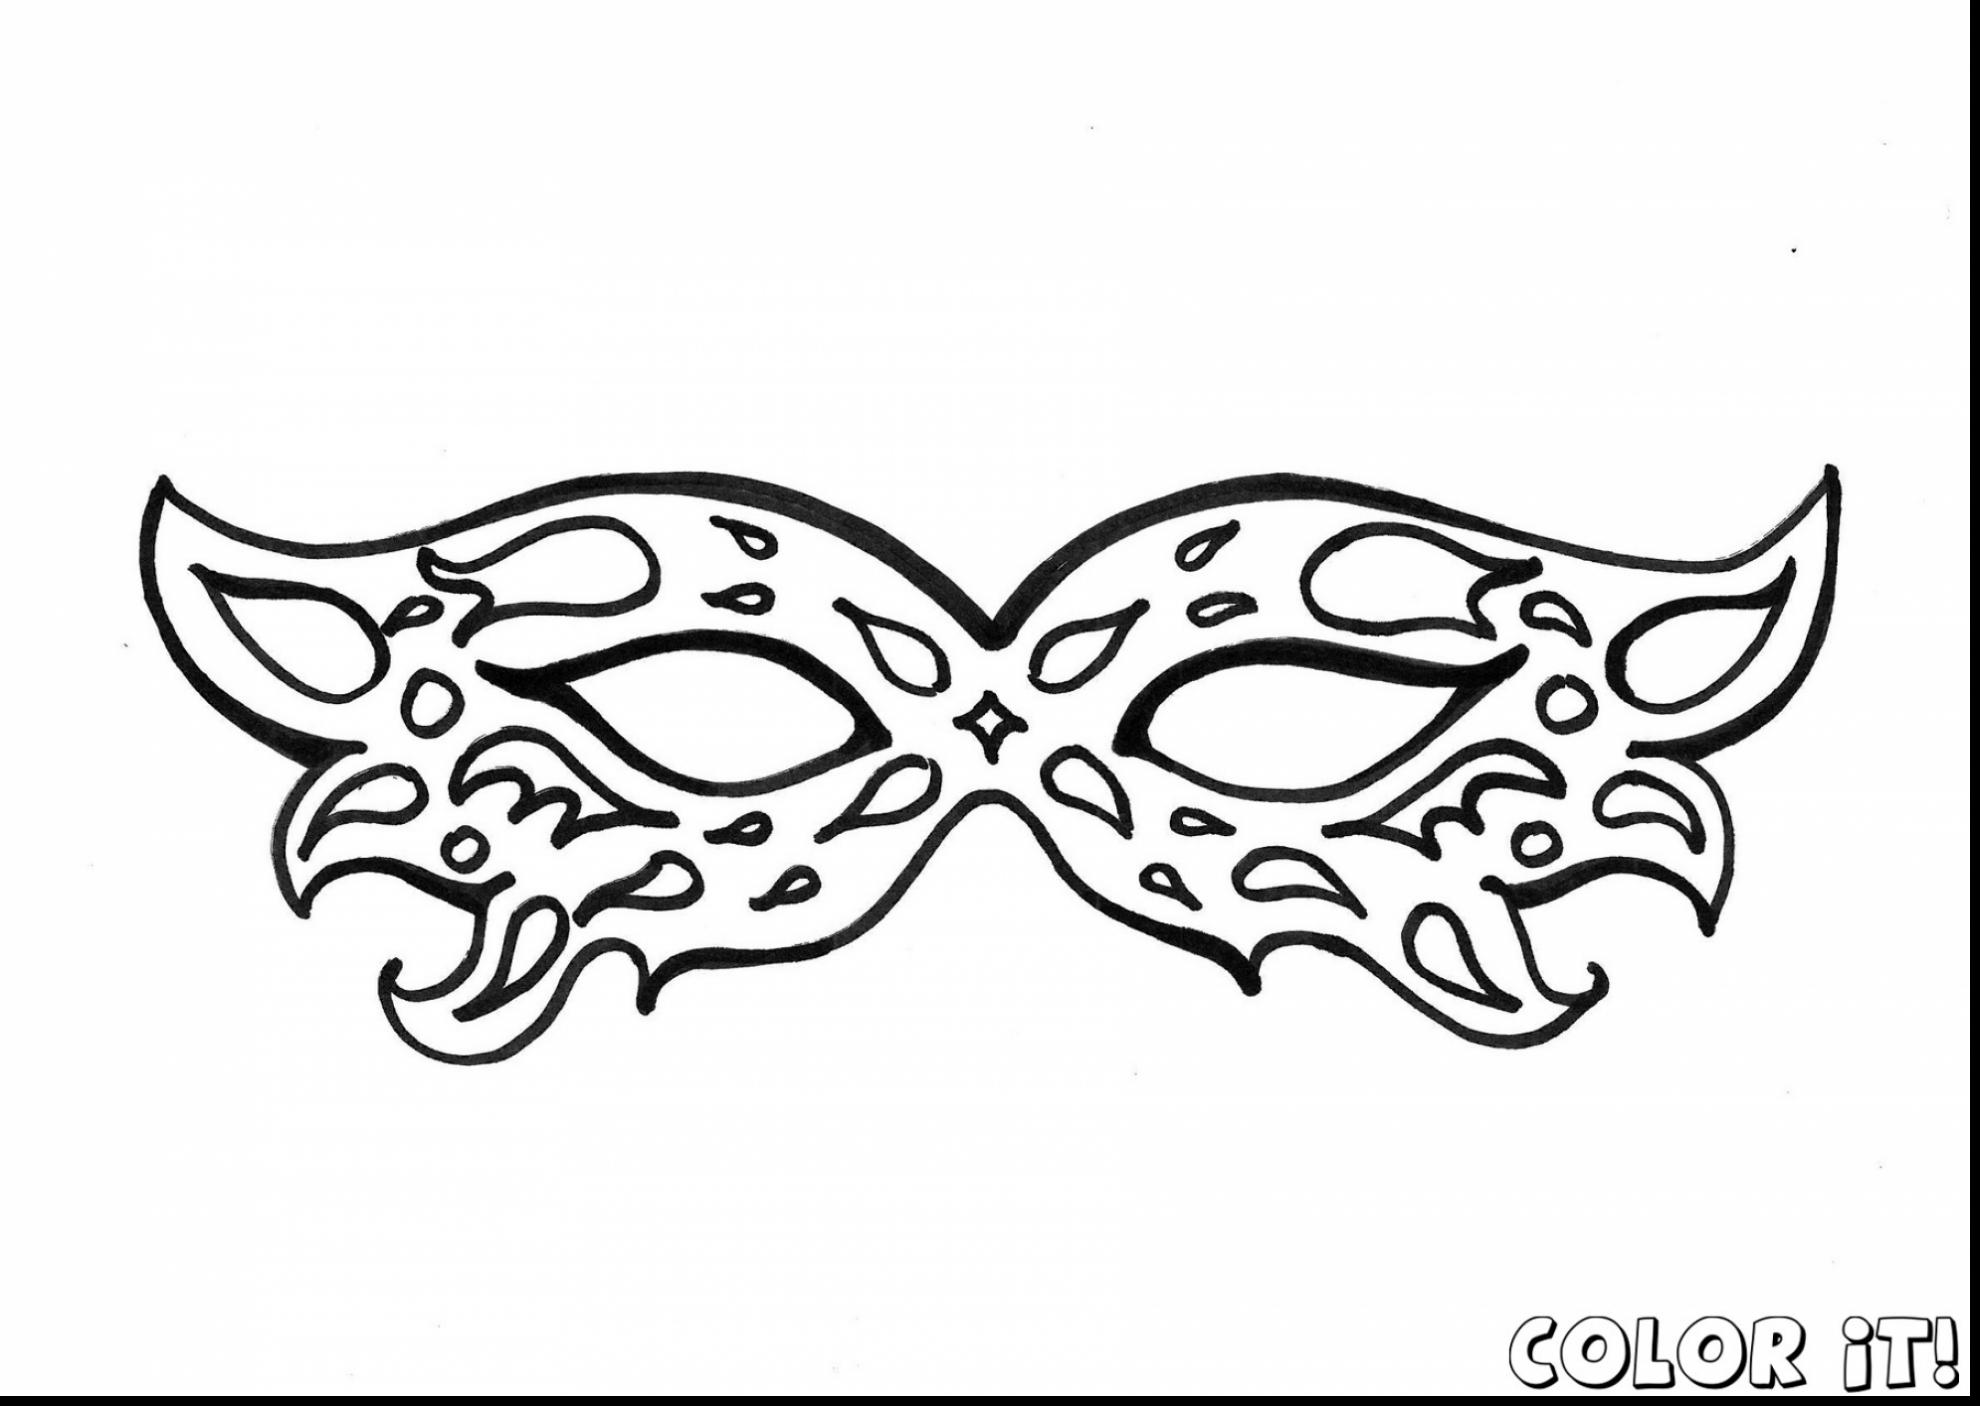 1980x1406 Excellent Carnival Masks Coloring Pages With Mask Coloring Pages